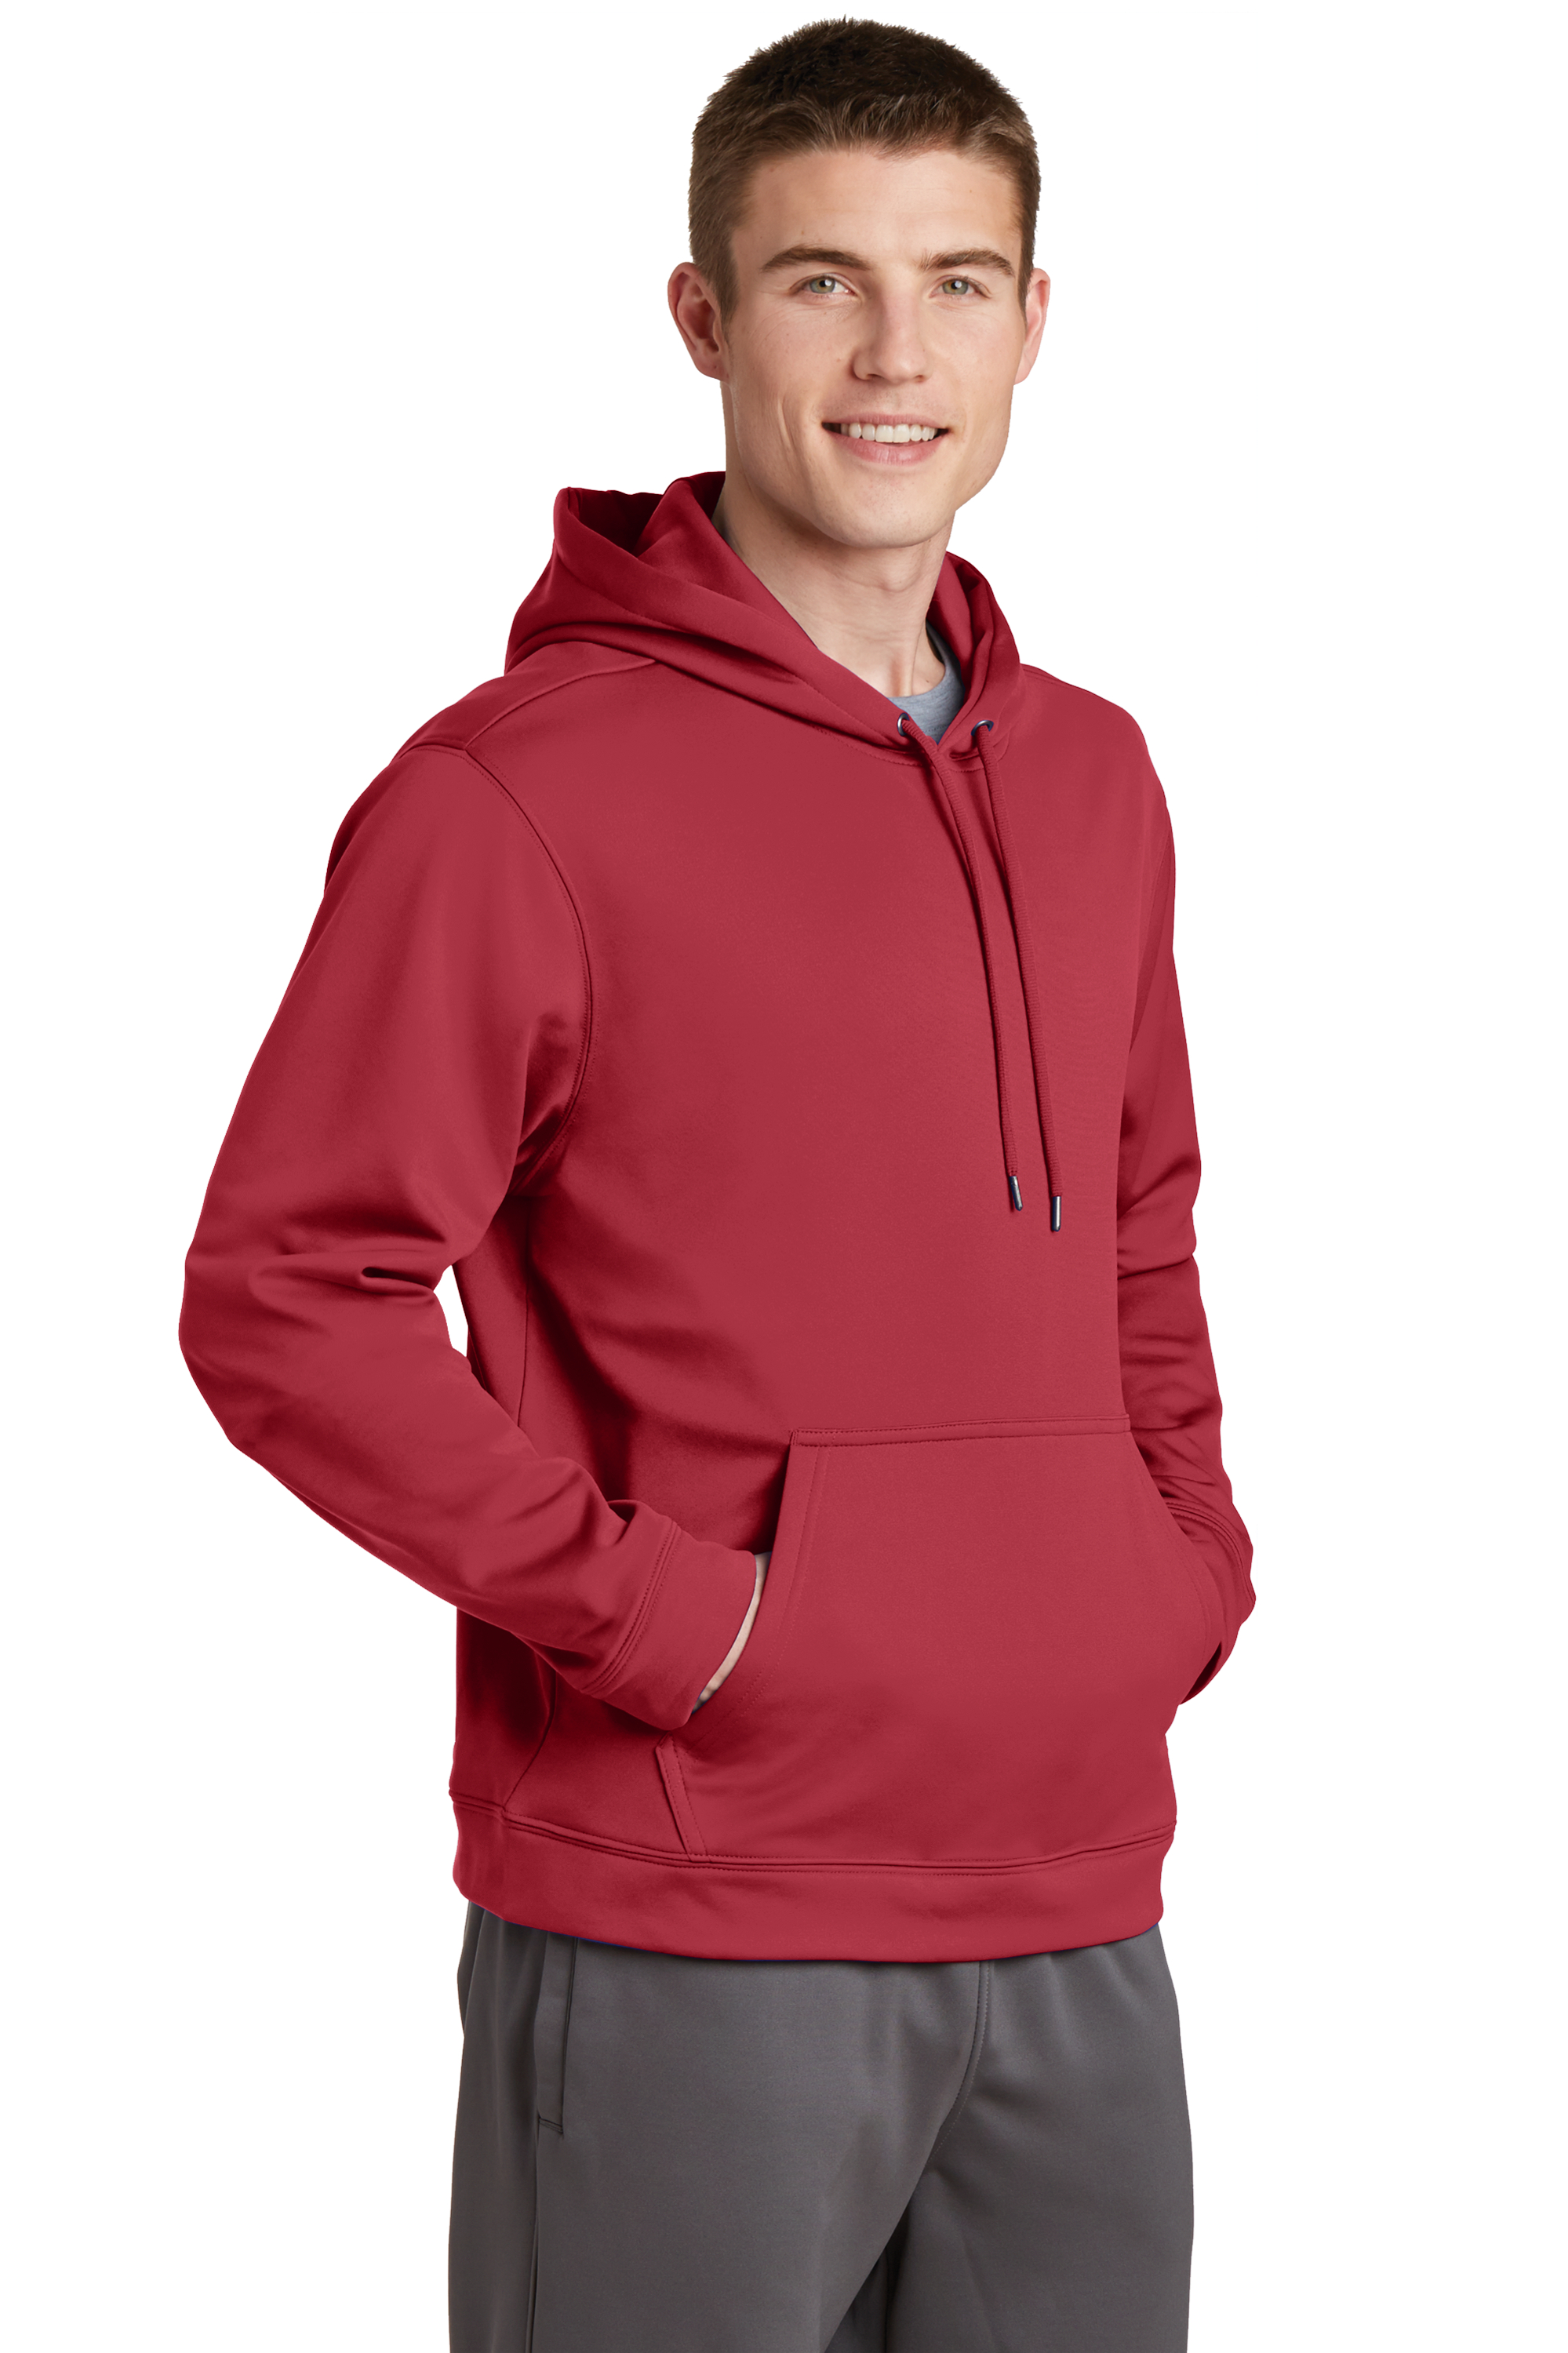 F244 Sport Tek Sport Wick Fleece Hooded Pullover To add a logo to the product; michael s uniform company